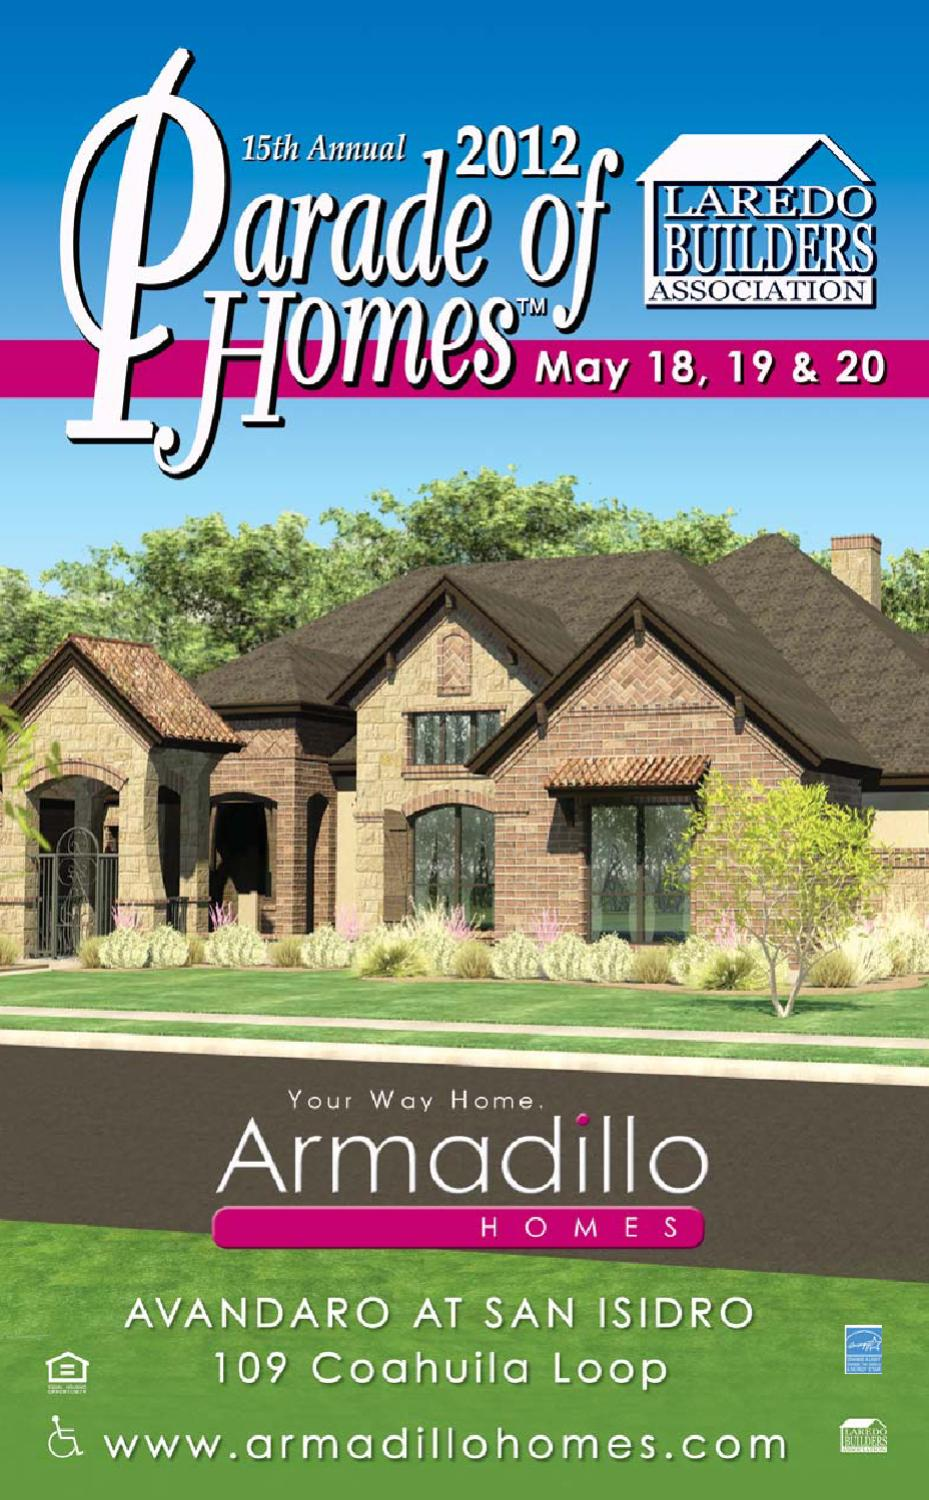 2012 parade of homes guidebook by laredo builders for Laredo home builders